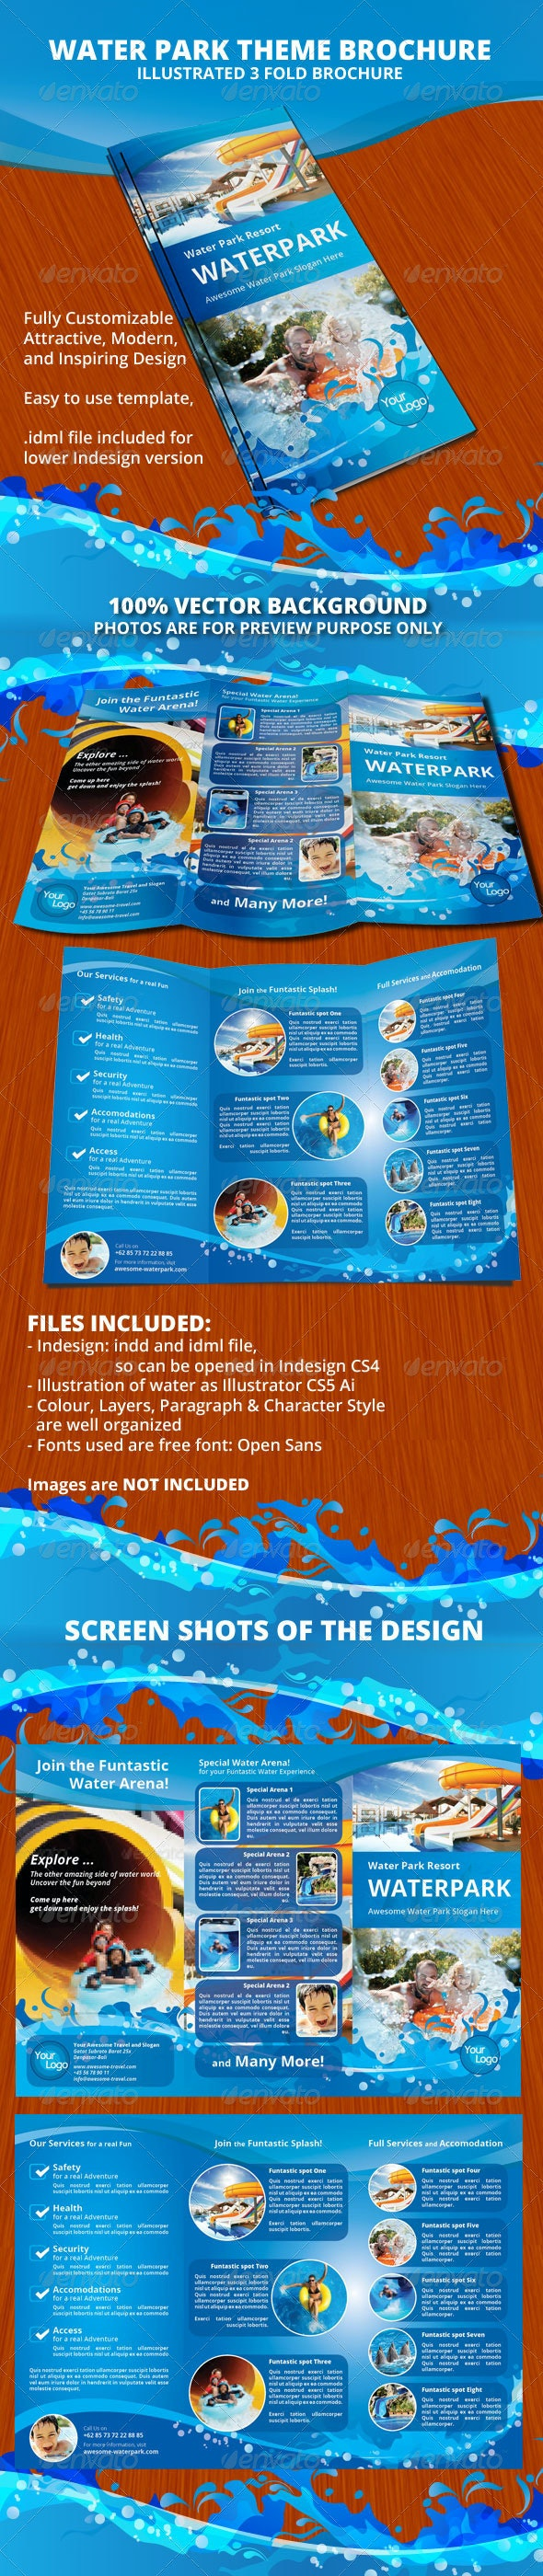 Water Park Theme Trifold Brochure - Informational Brochures